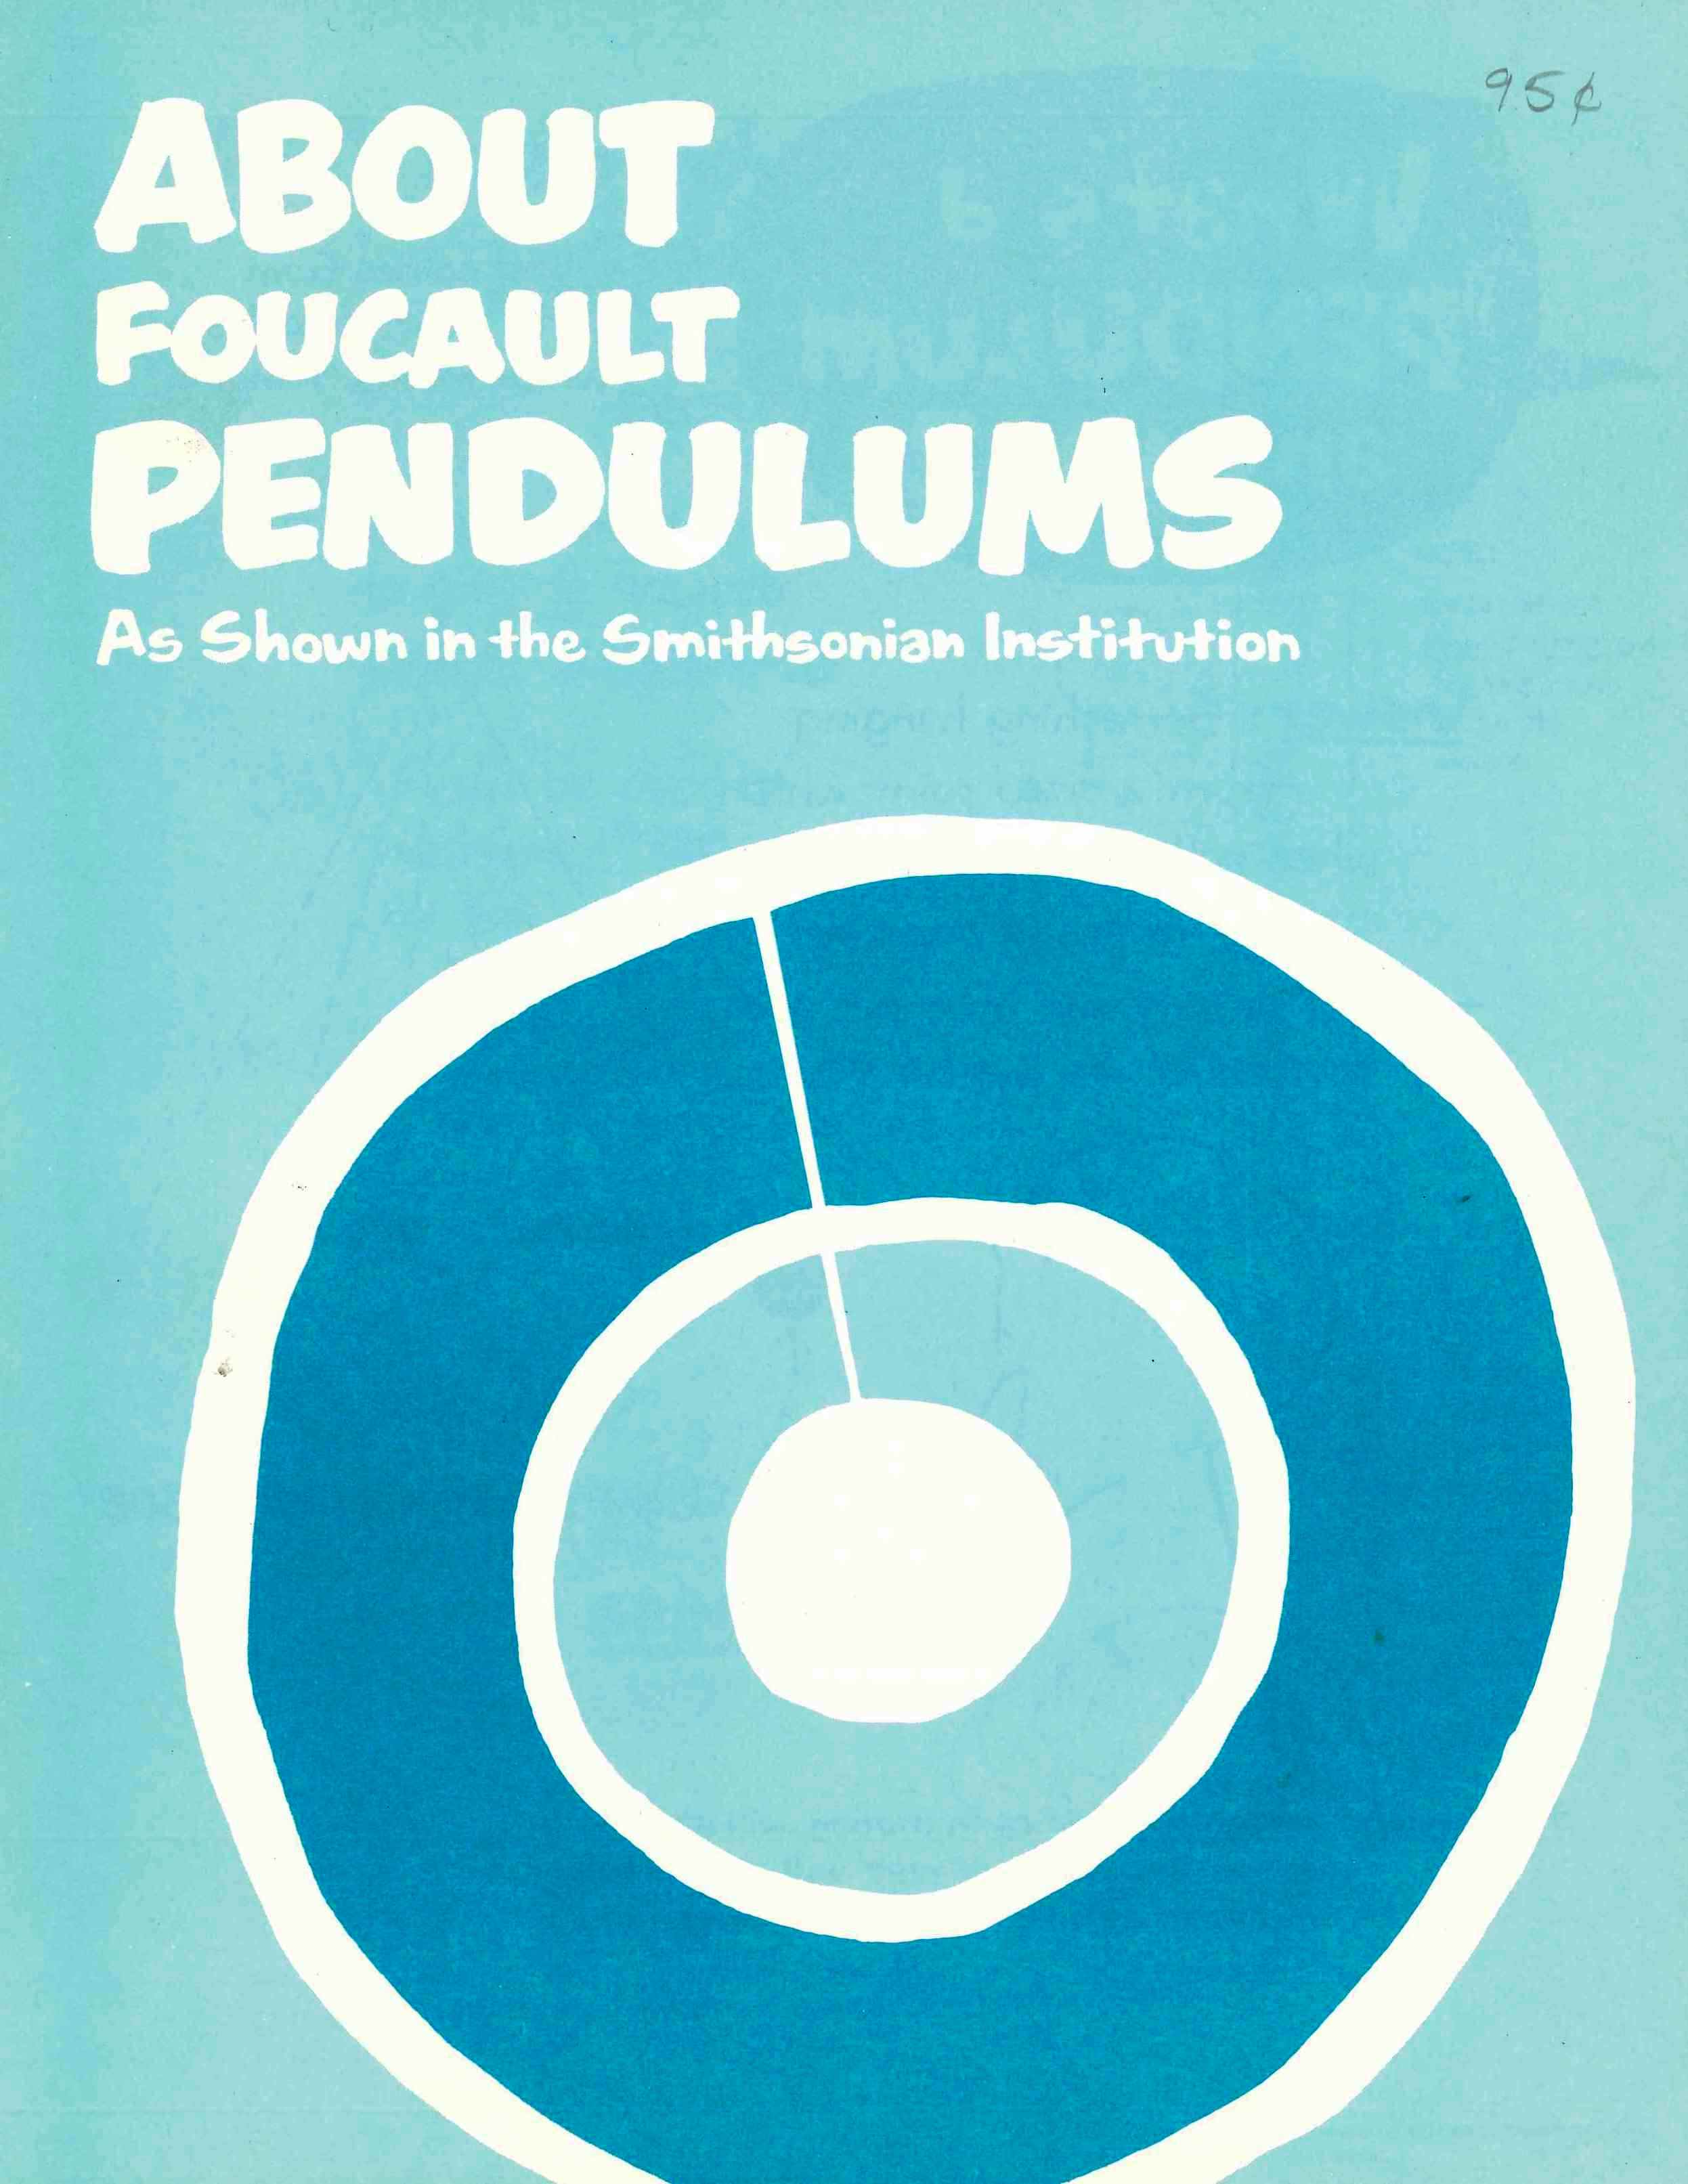 Cover of an educational guide on Foucault pendulums.